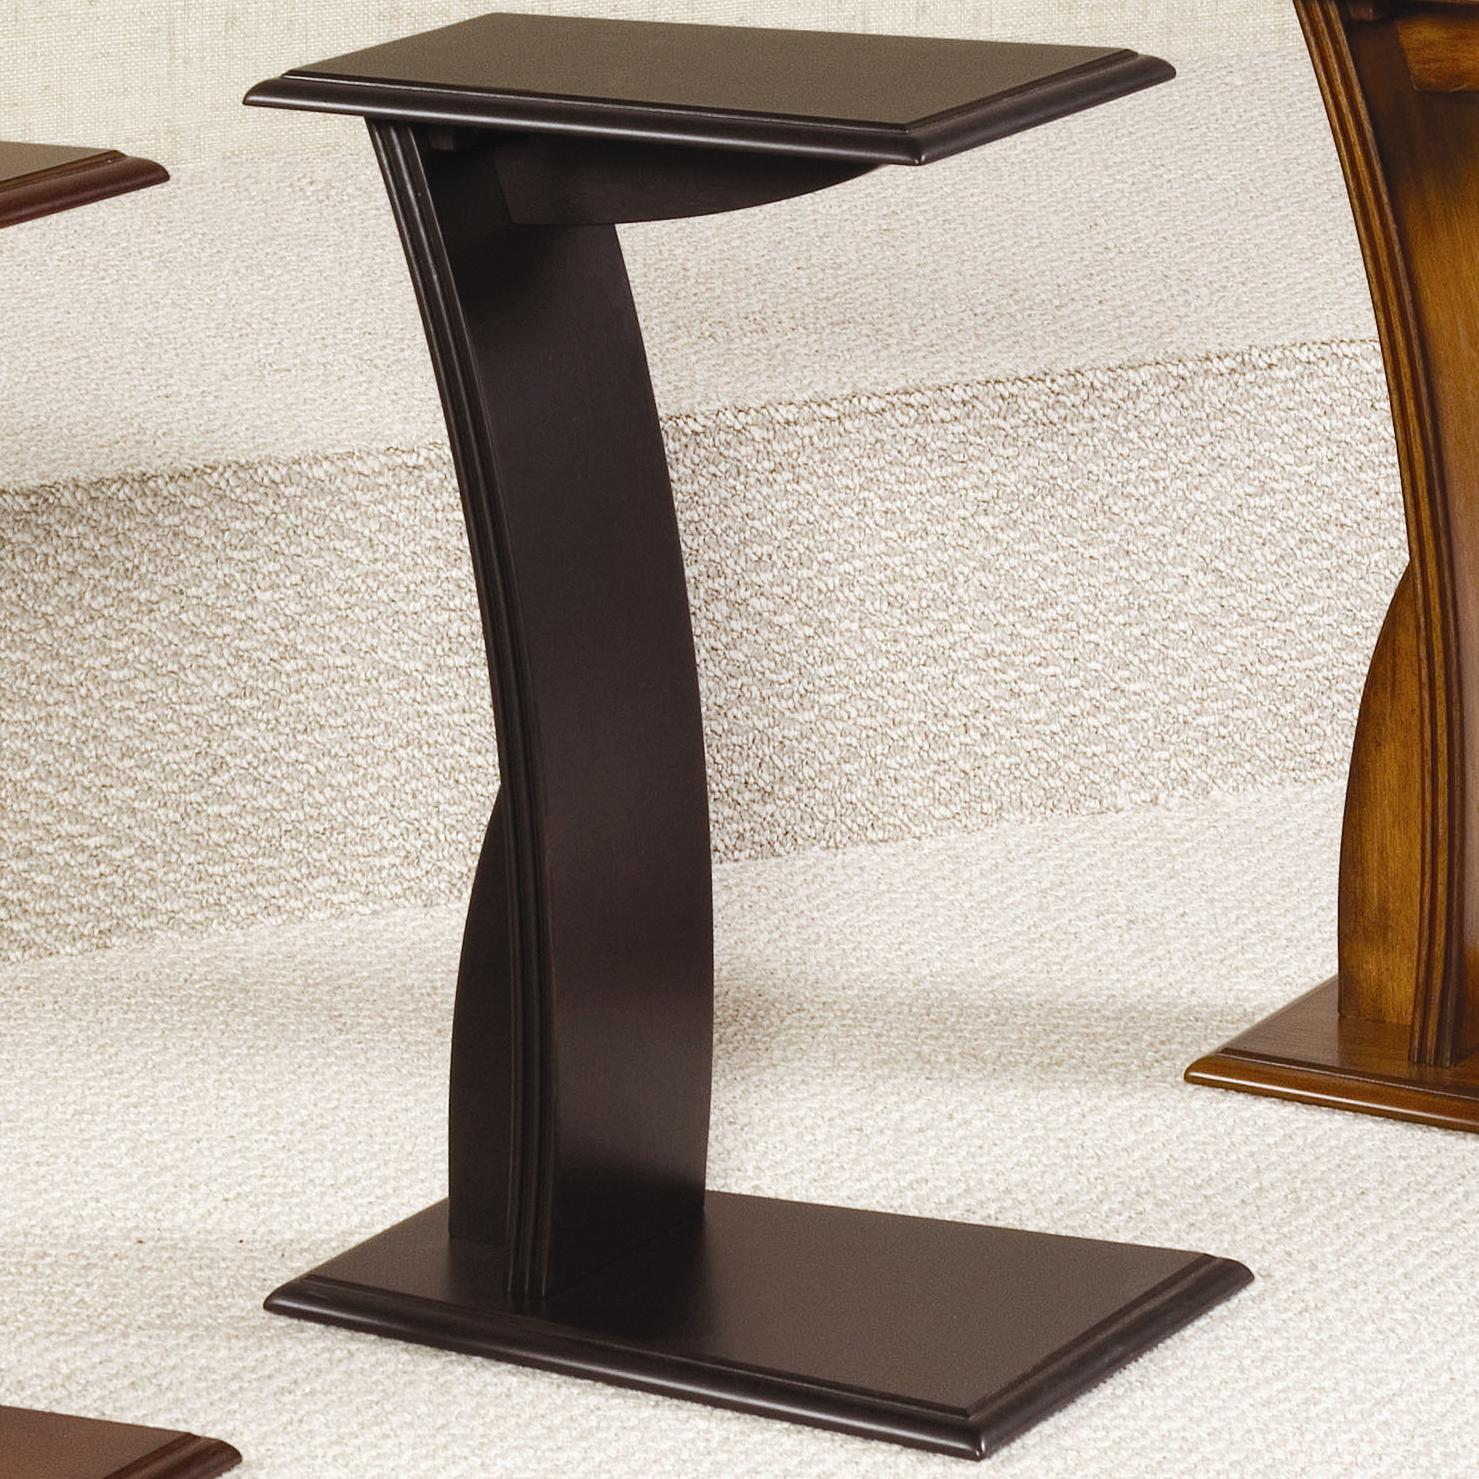 Chairsides Chairside Table by Hammary at HomeWorld Furniture